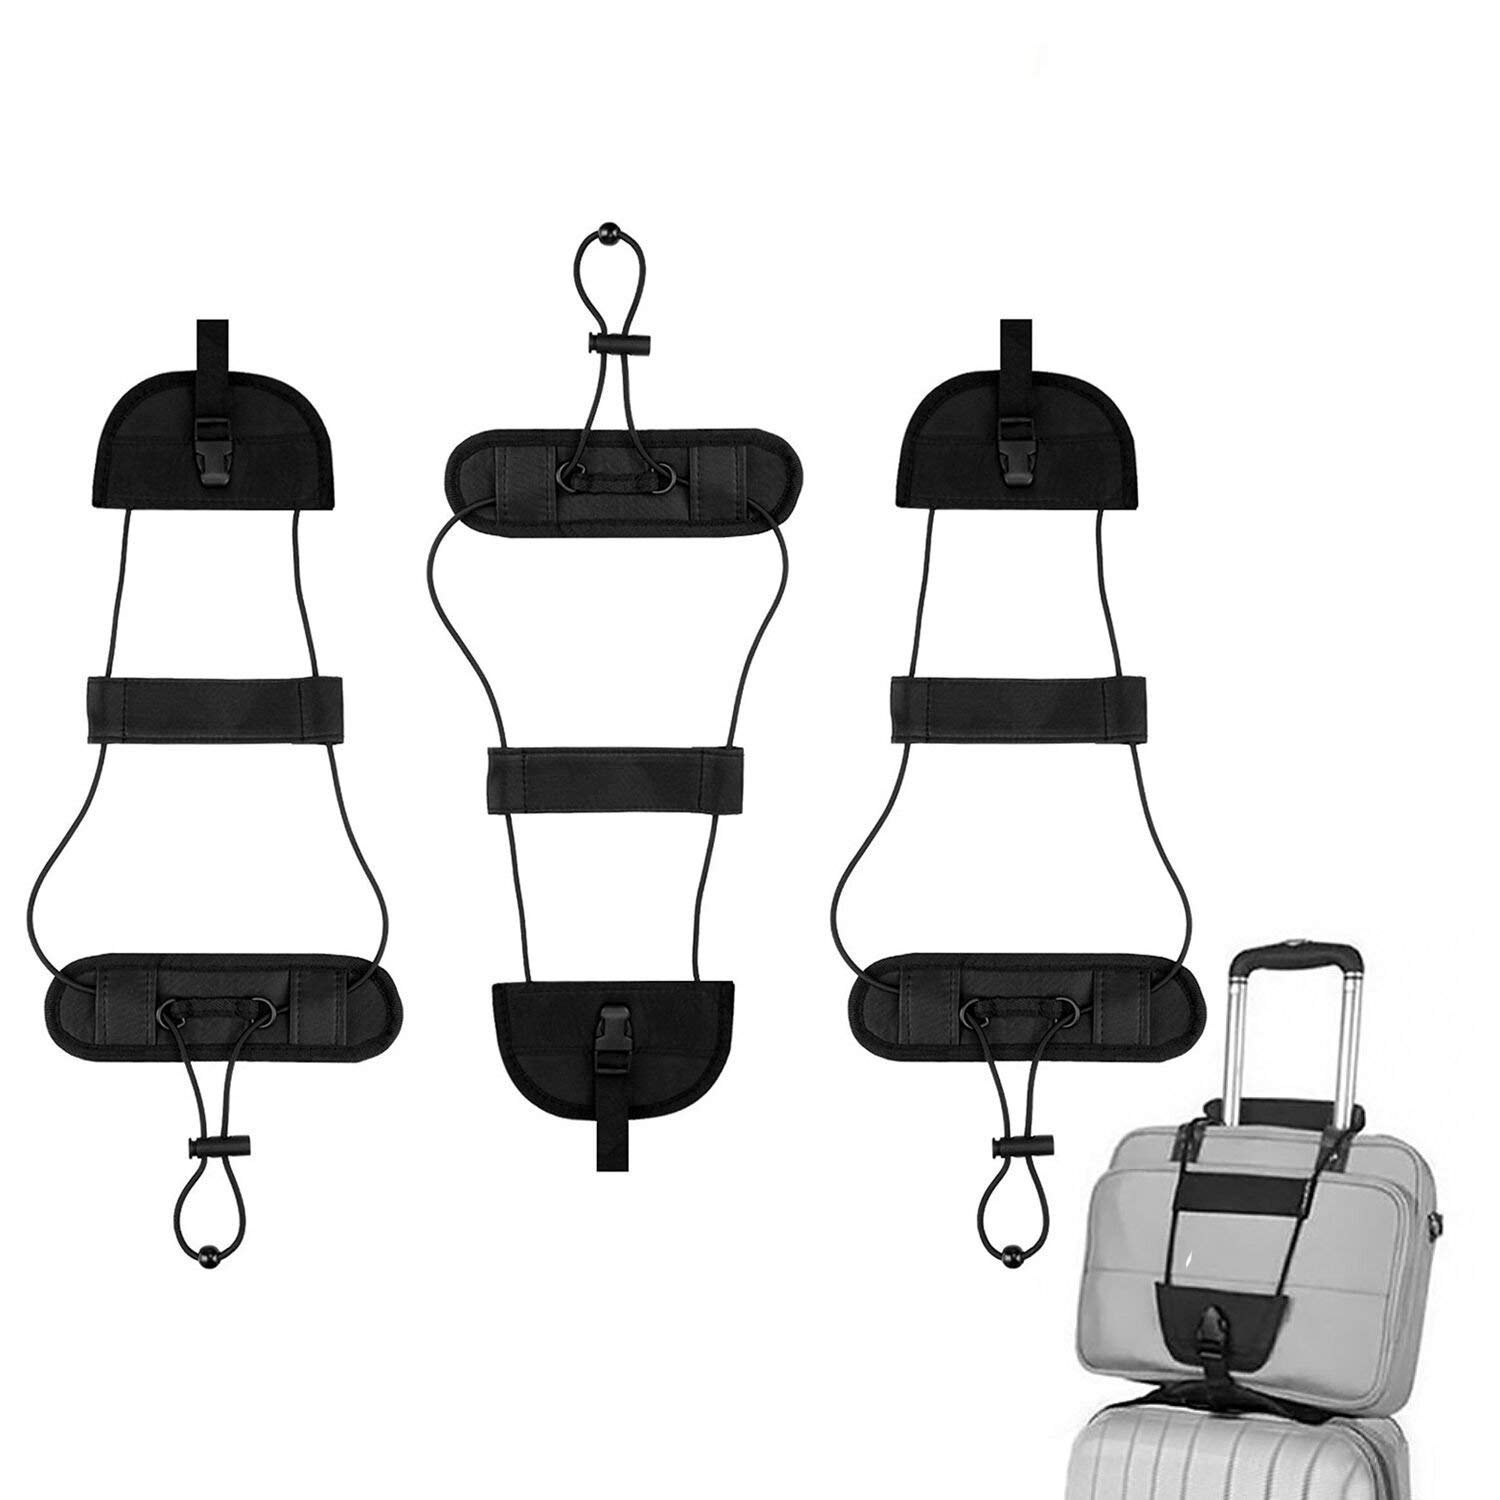 Lonew Bag Bungee, Luggage Straps Suitcase Adjustable Belt - Lightweight and Durable Travel Bag Accessories - 3Pack